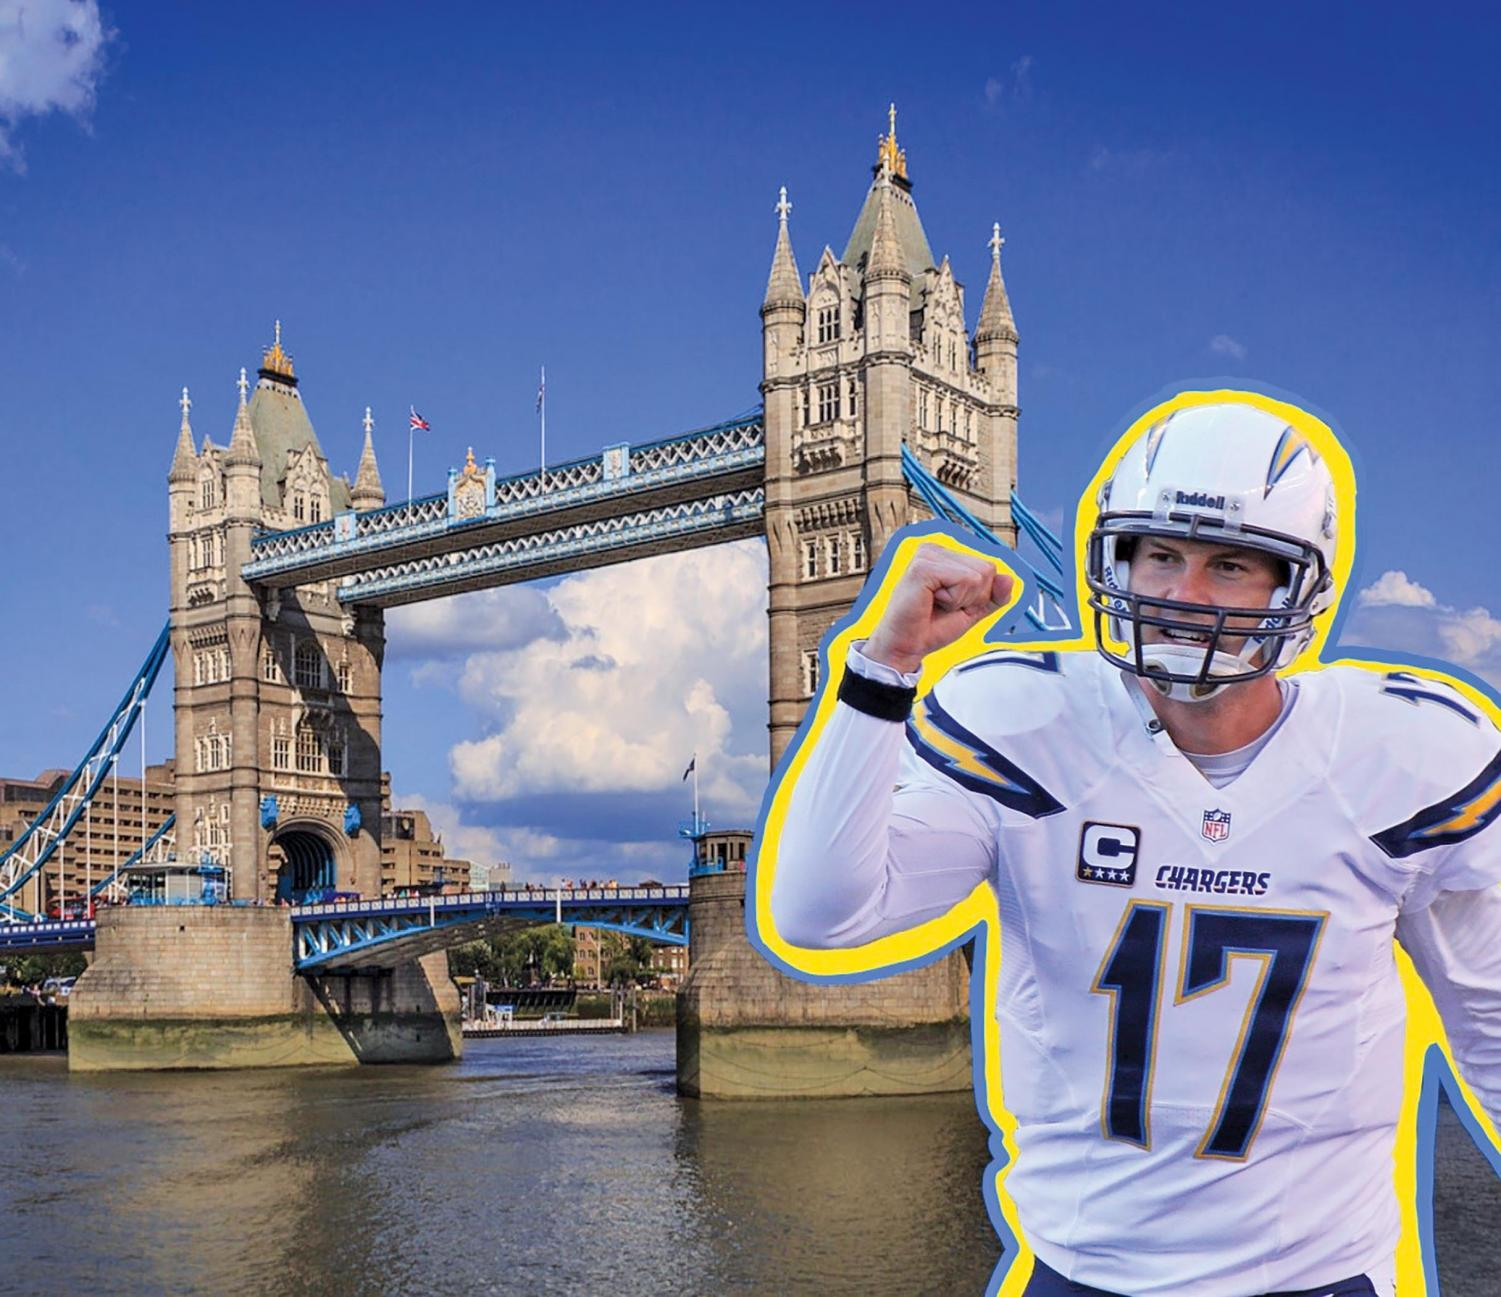 Just two years since relocating to L.A., the Chargers are reportedly considering a move once again, this time to London.